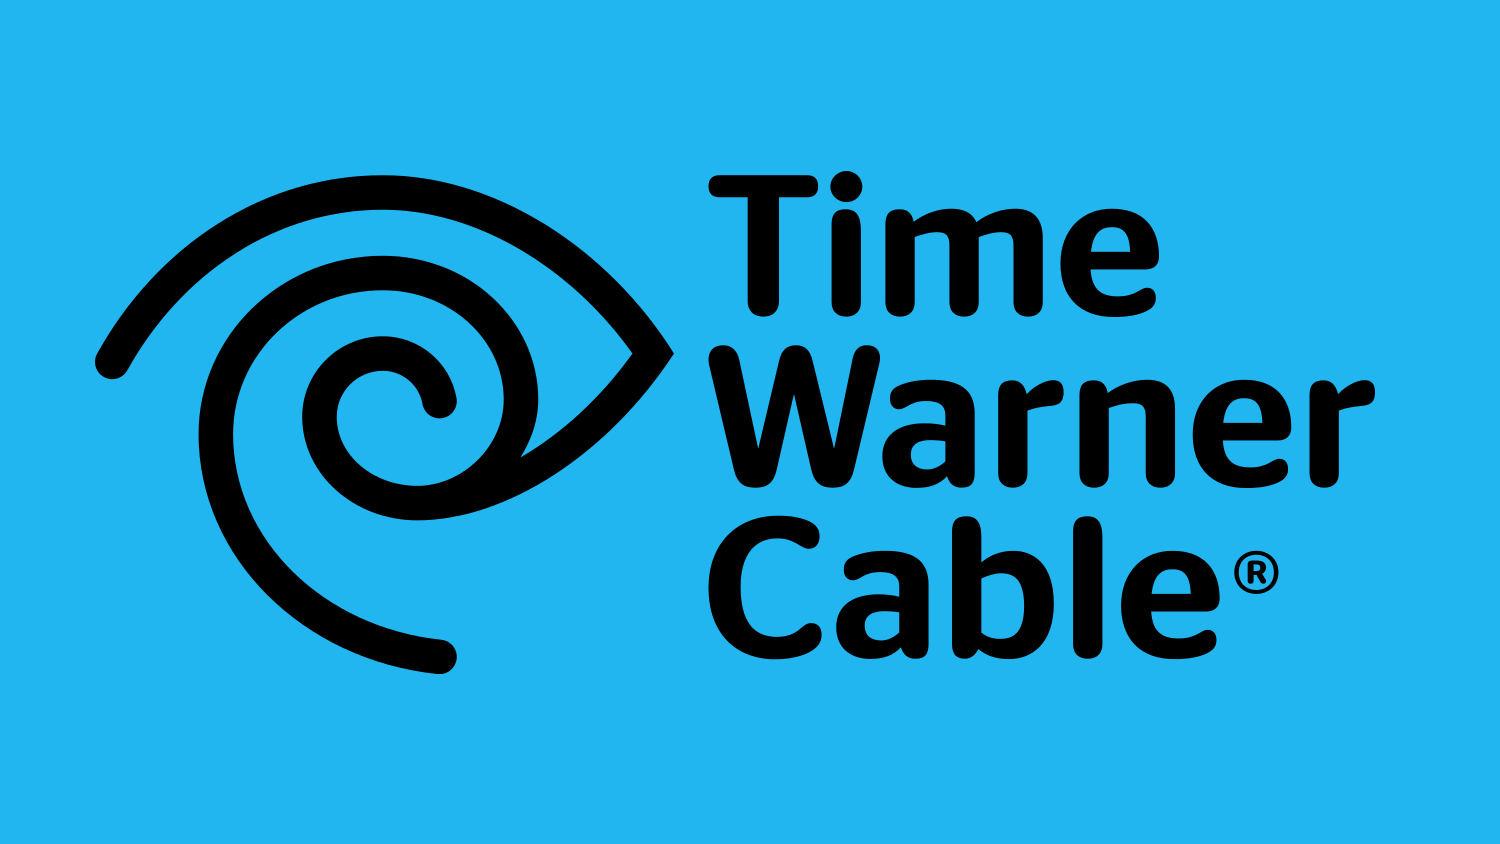 Time Warner Logo - Time Warner Cable logo | Dwglogo